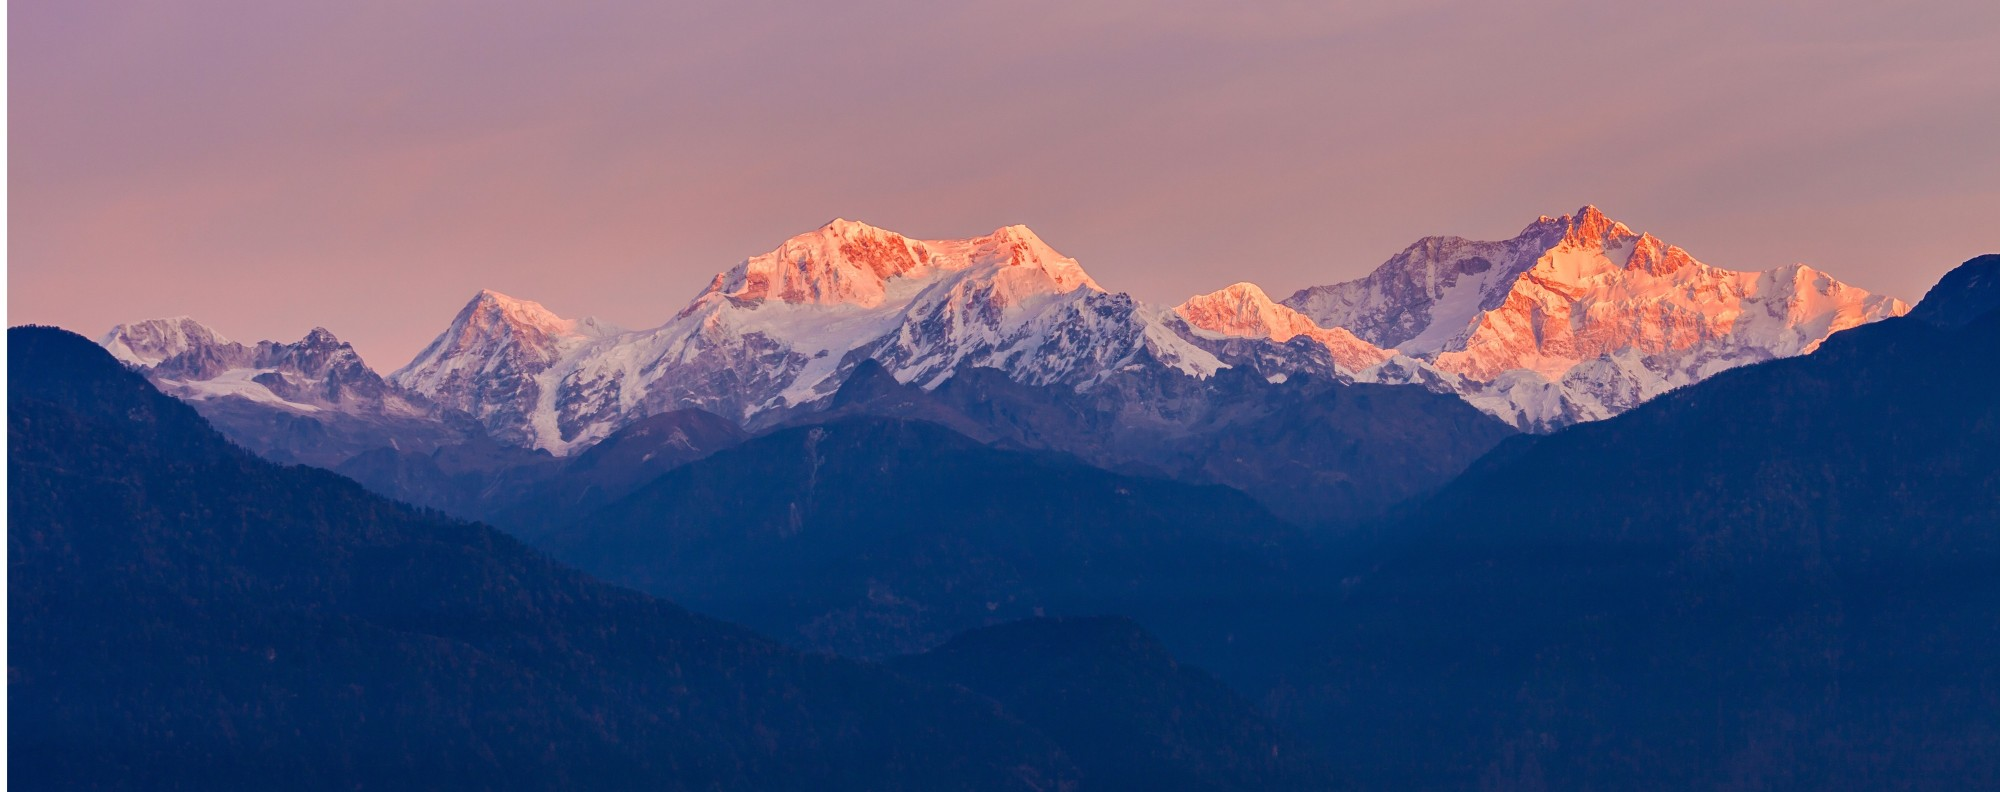 Kangchenjunga sunrise view from Sikkim, India. Handout photo